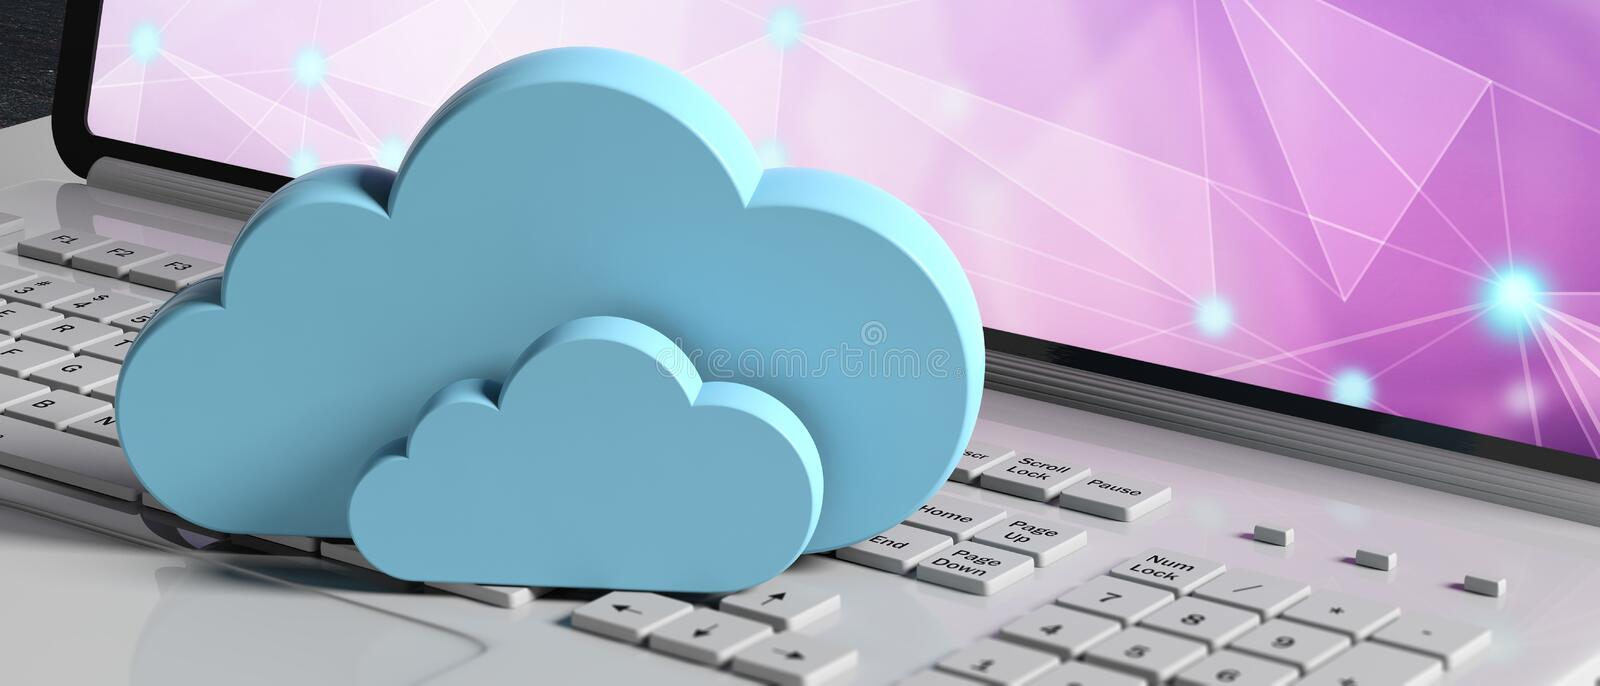 Cloud computing. Blue clouds on a computer laptop, banner. 3d illustration royalty free illustration